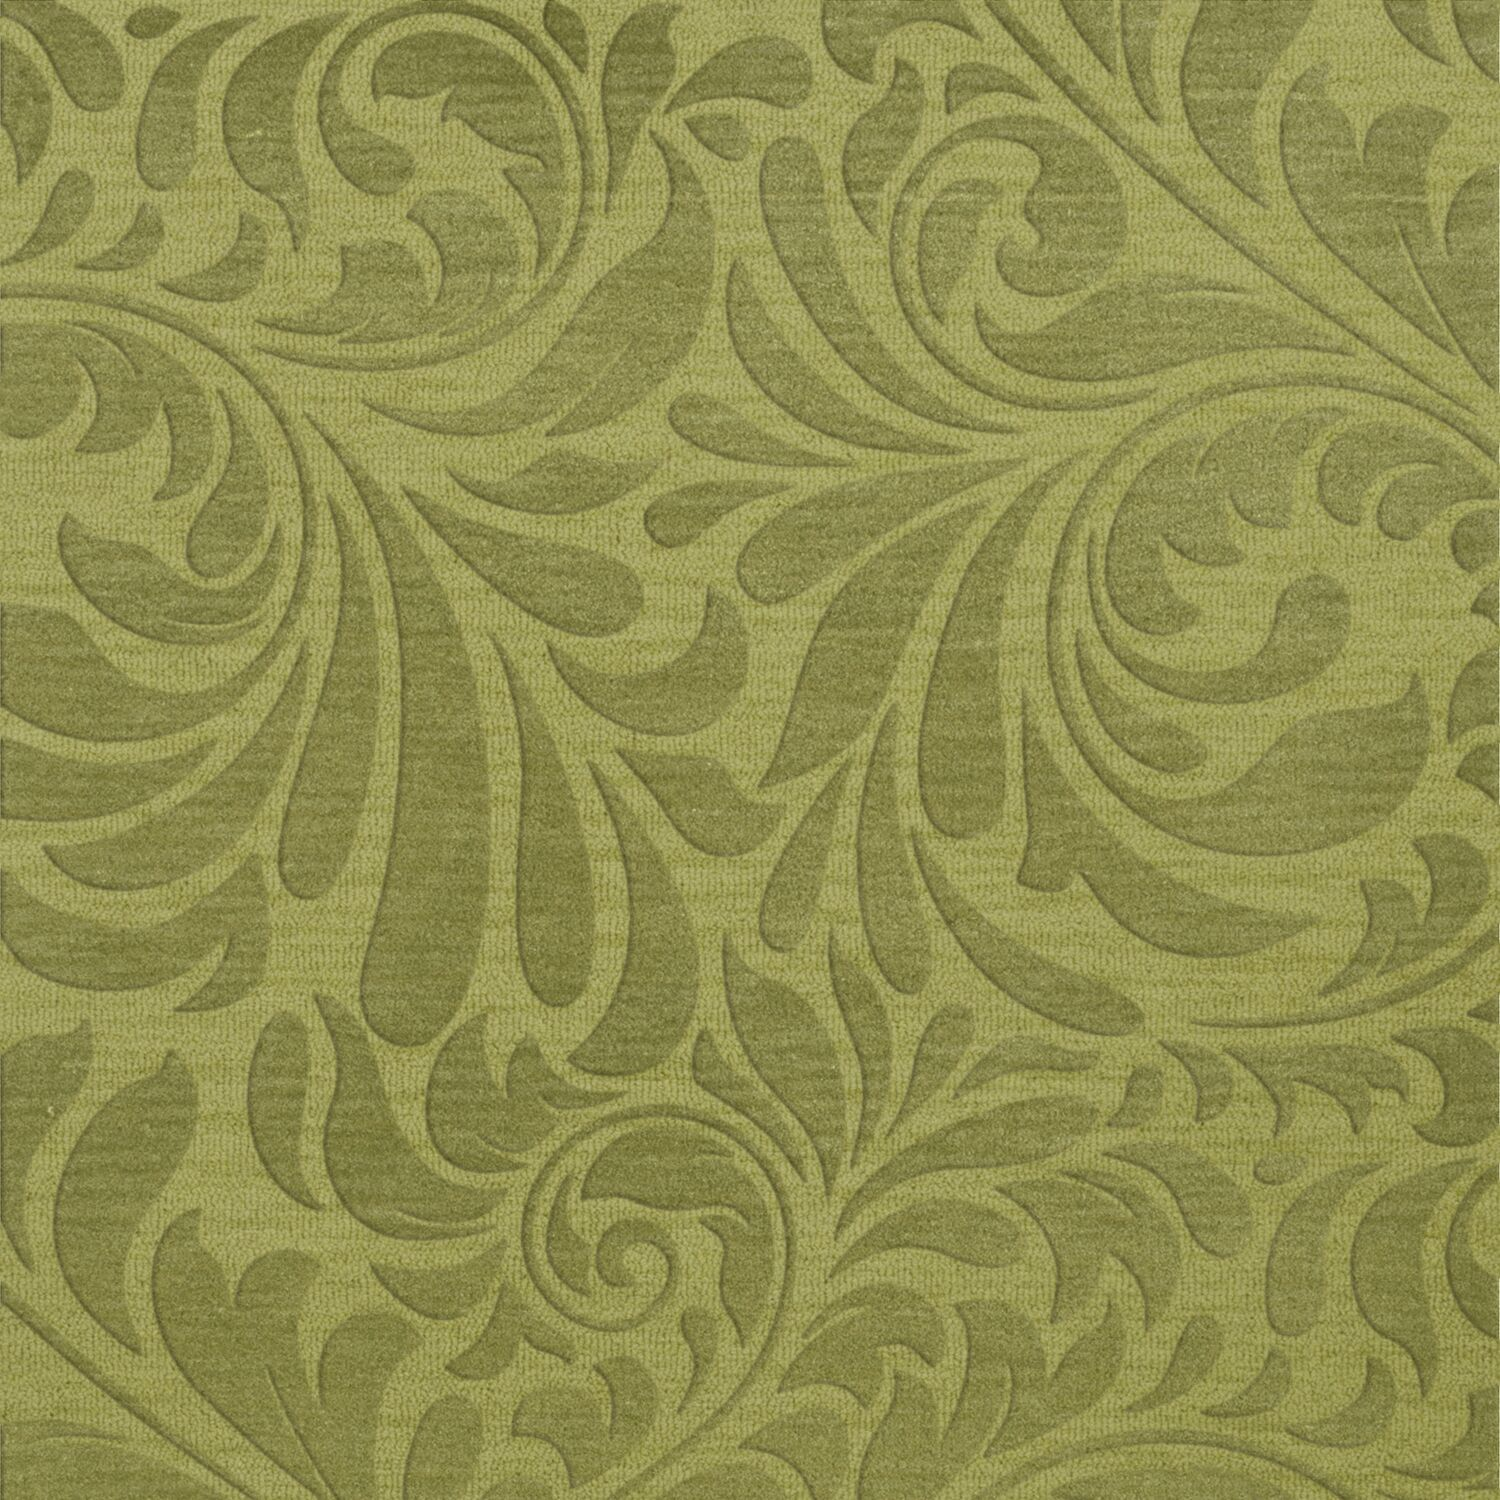 Bella Machine Woven Wool Green Pad Area Rug Rug Size: Square 8'